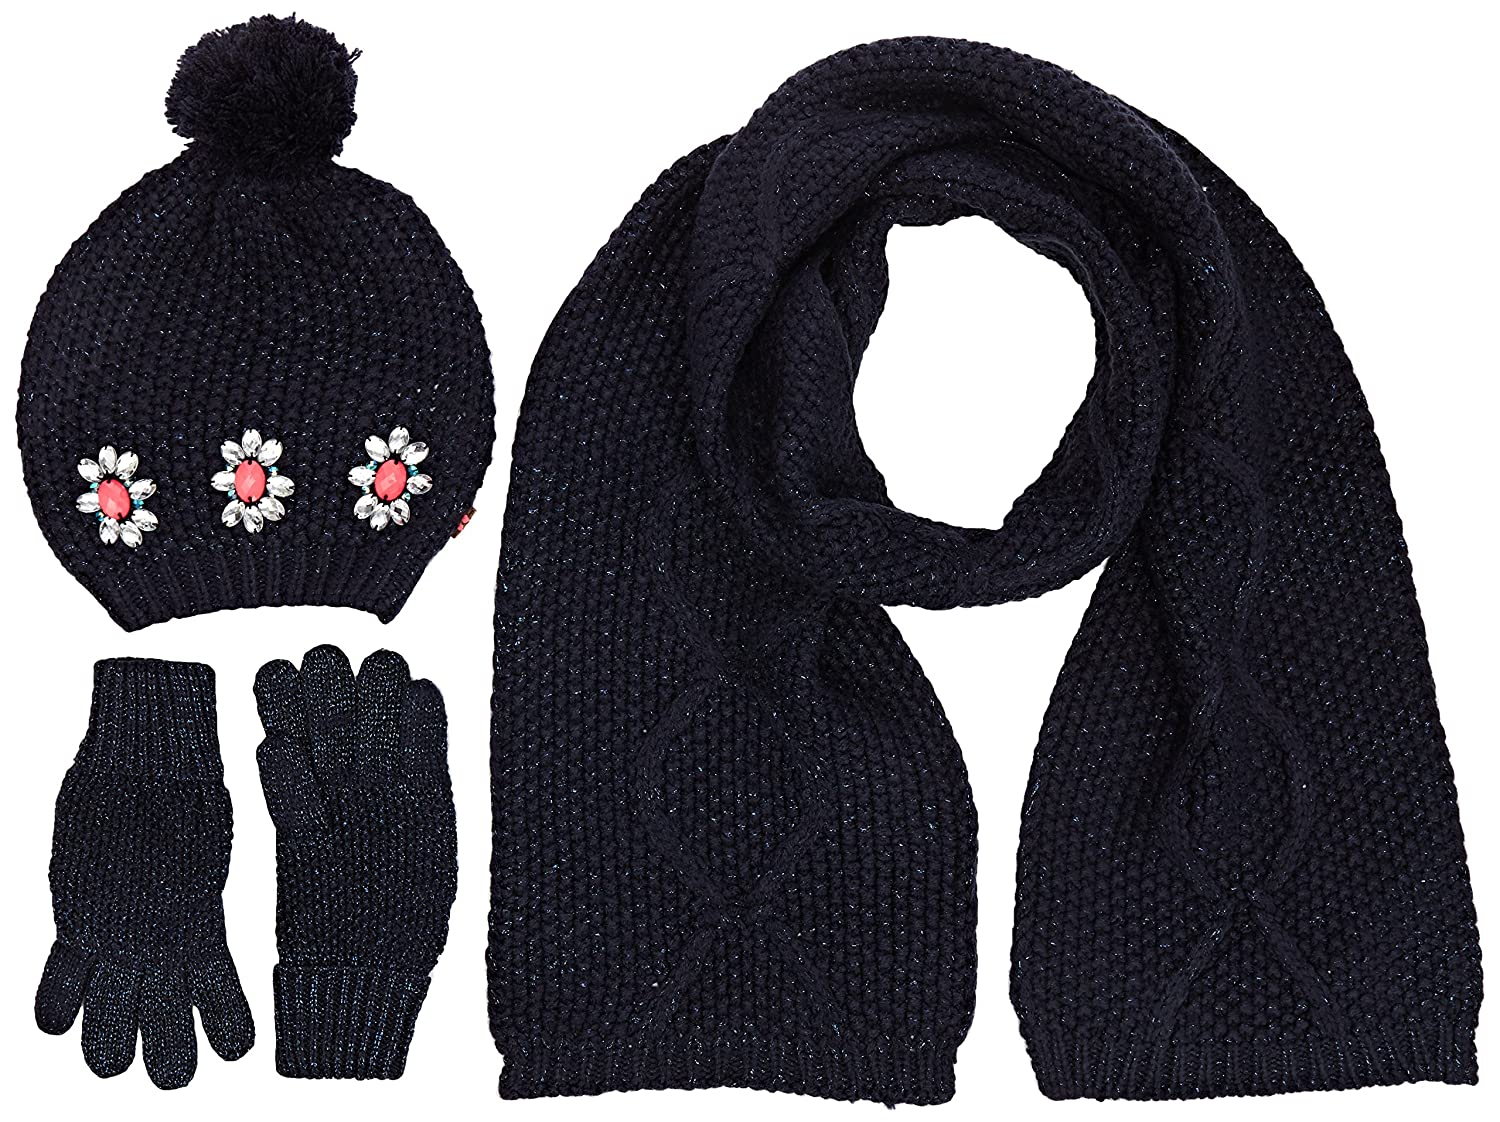 Billieblush Girl's U18052 Pull On Hat Gloves and Scarf Blue (Navy) 12 Years (Size:T3) U18052/849T3